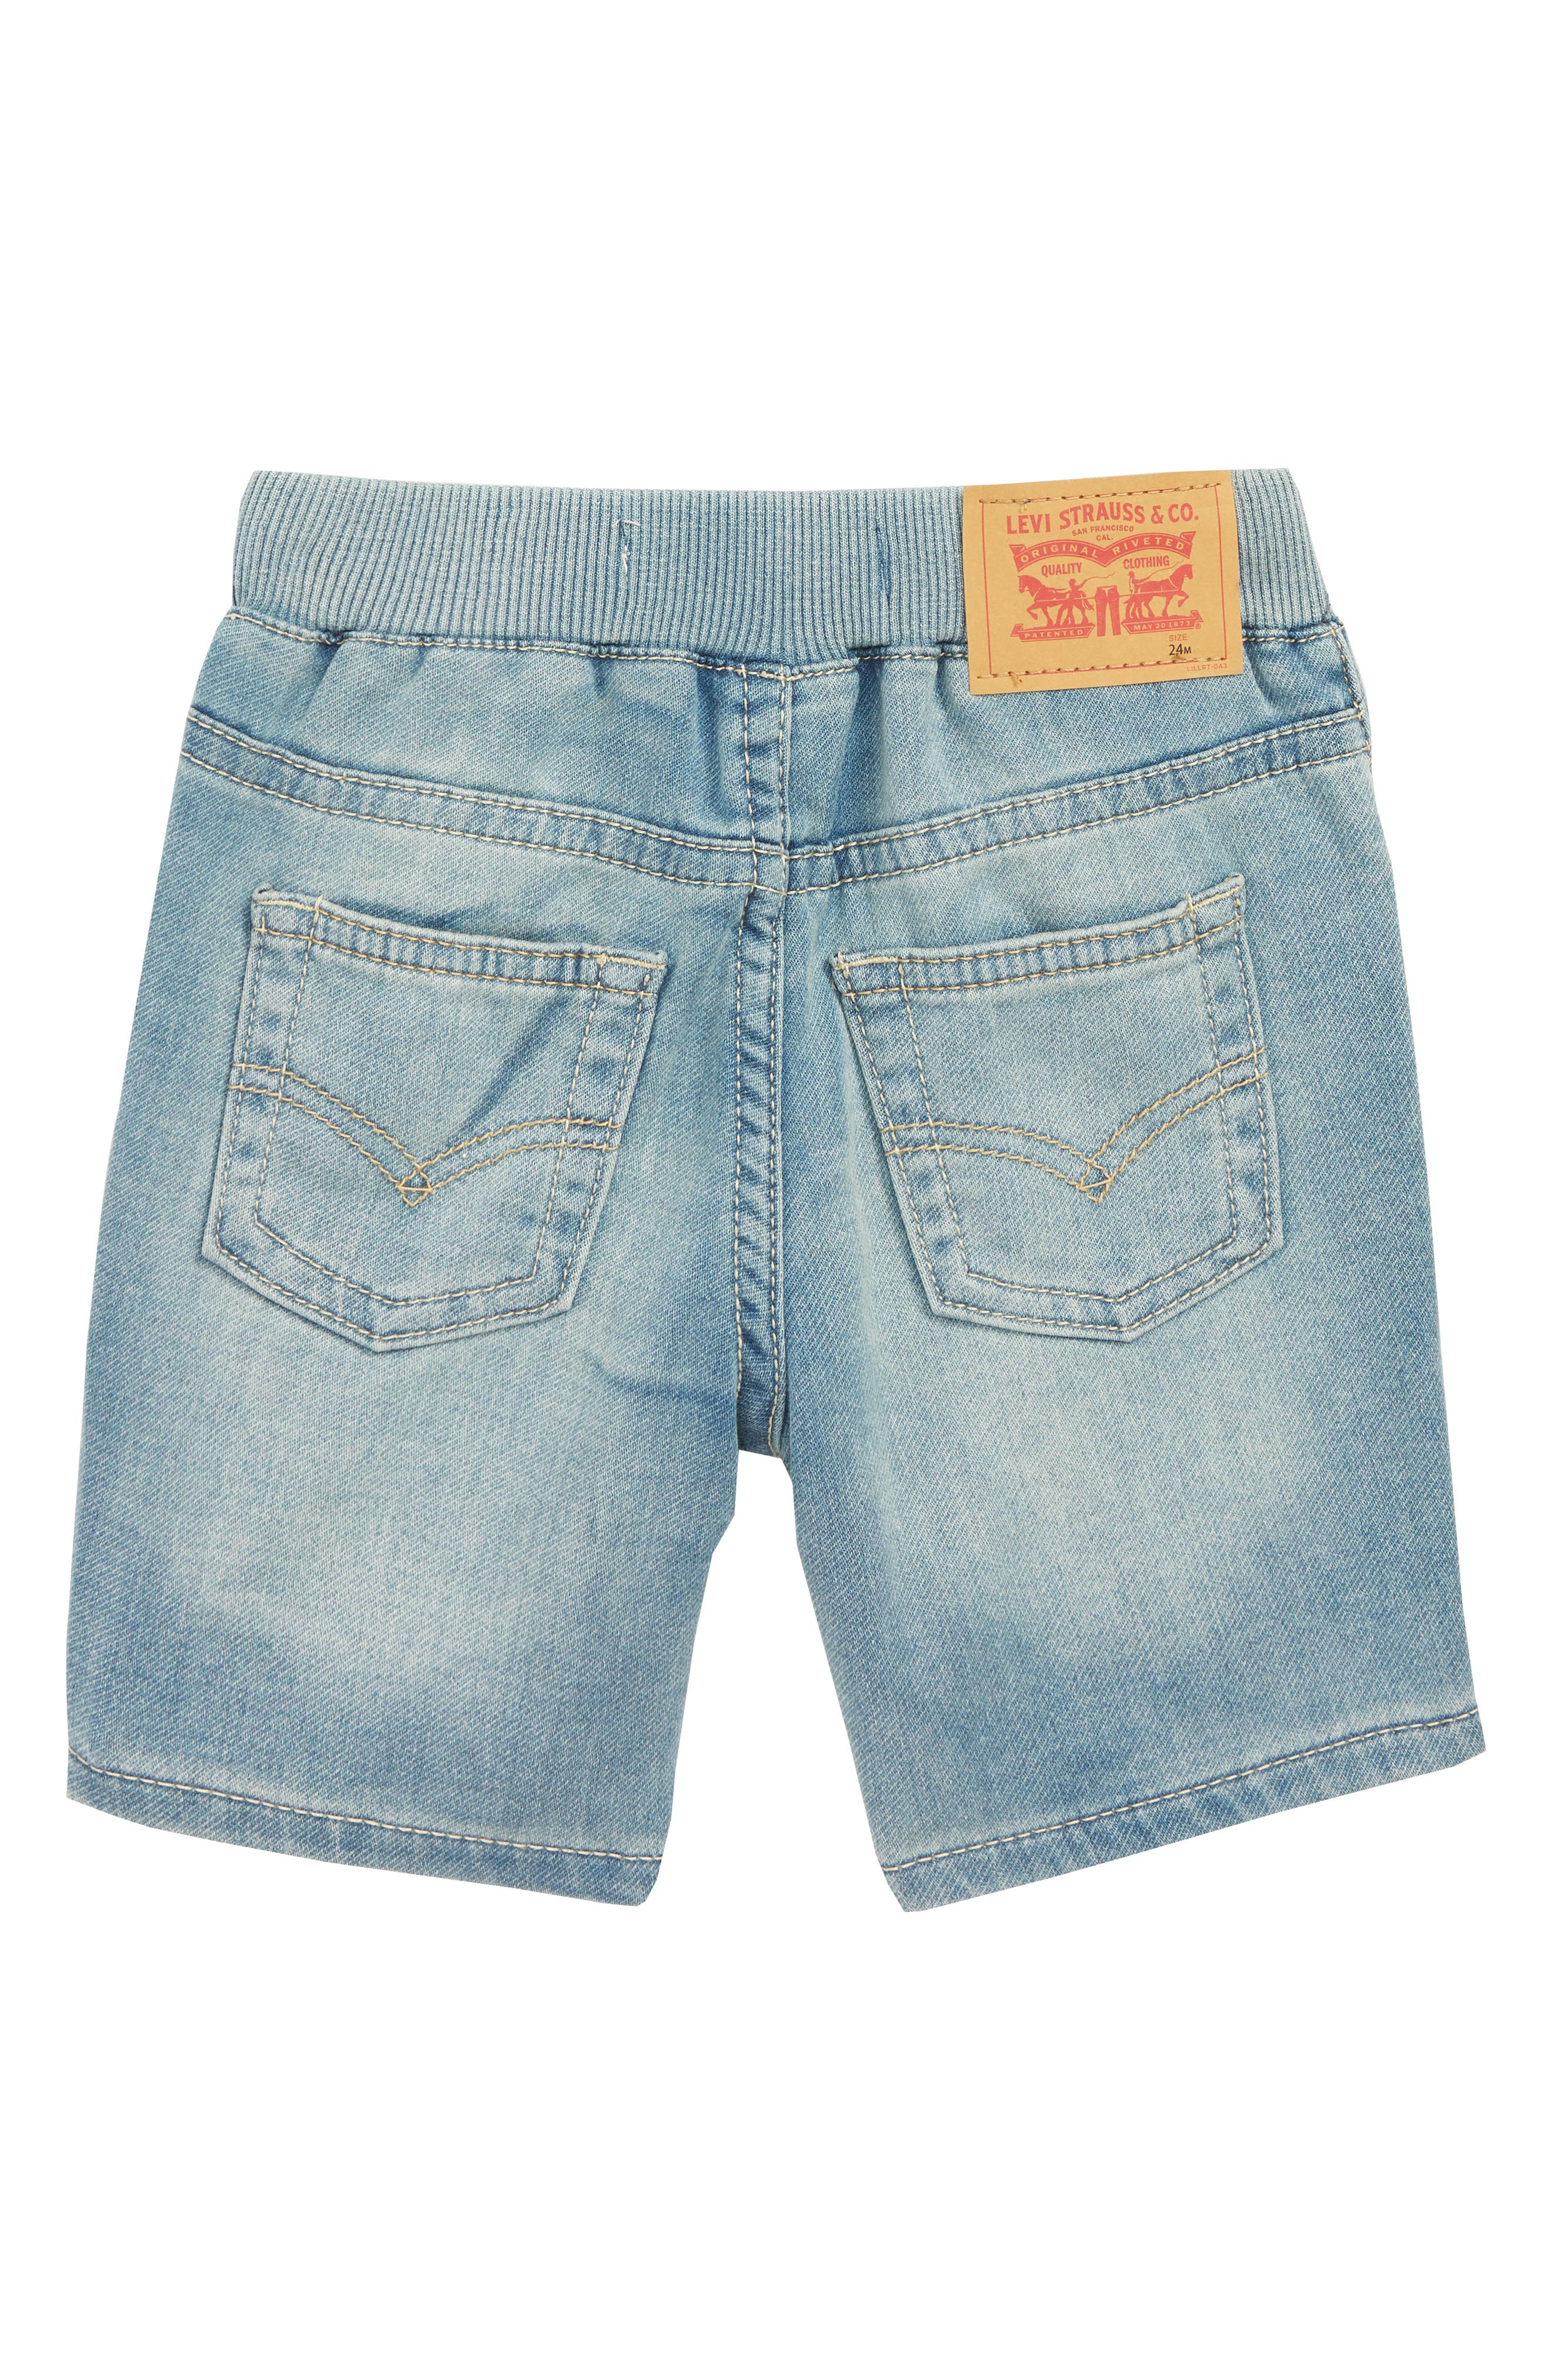 Knit Denim Shorts,                             Alternate thumbnail 2, color,                             424